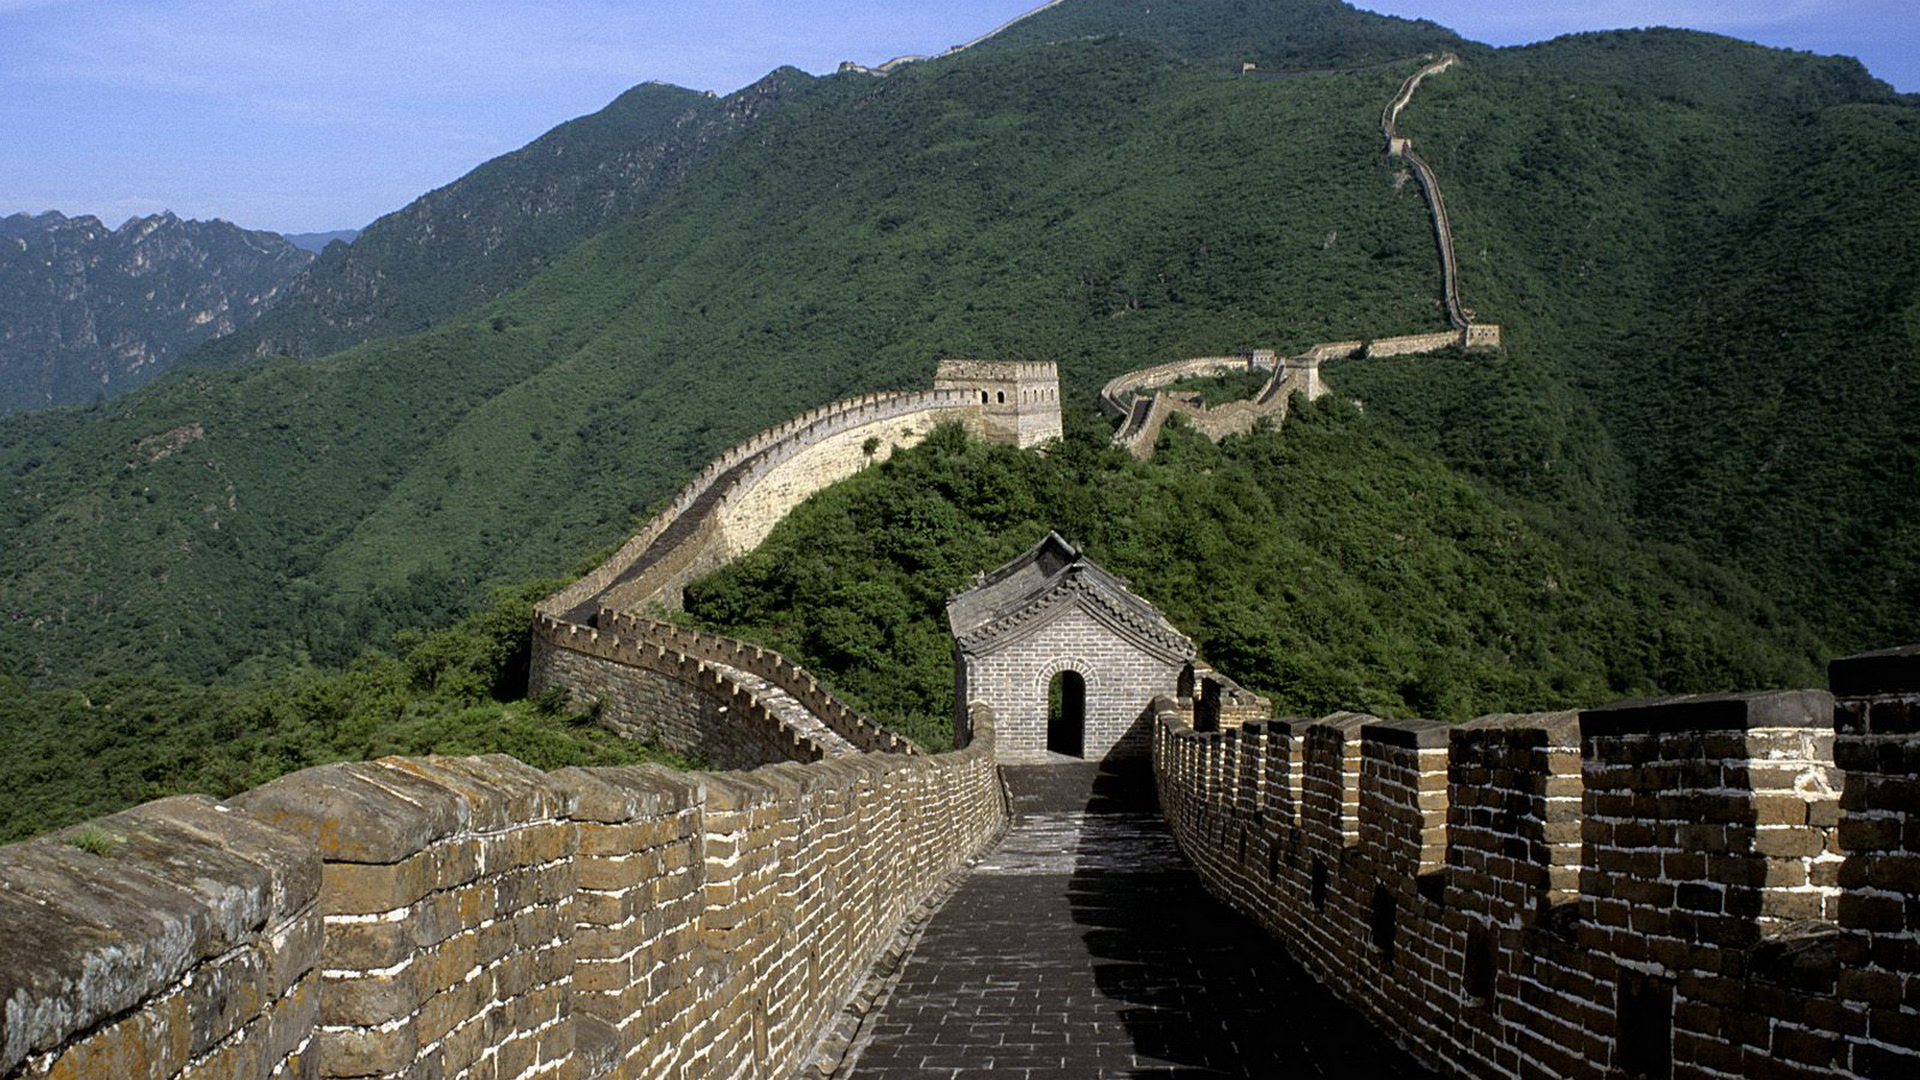 Great Wall Of China Wallpapers HD 61W13AJ   4USkY 1920x1080